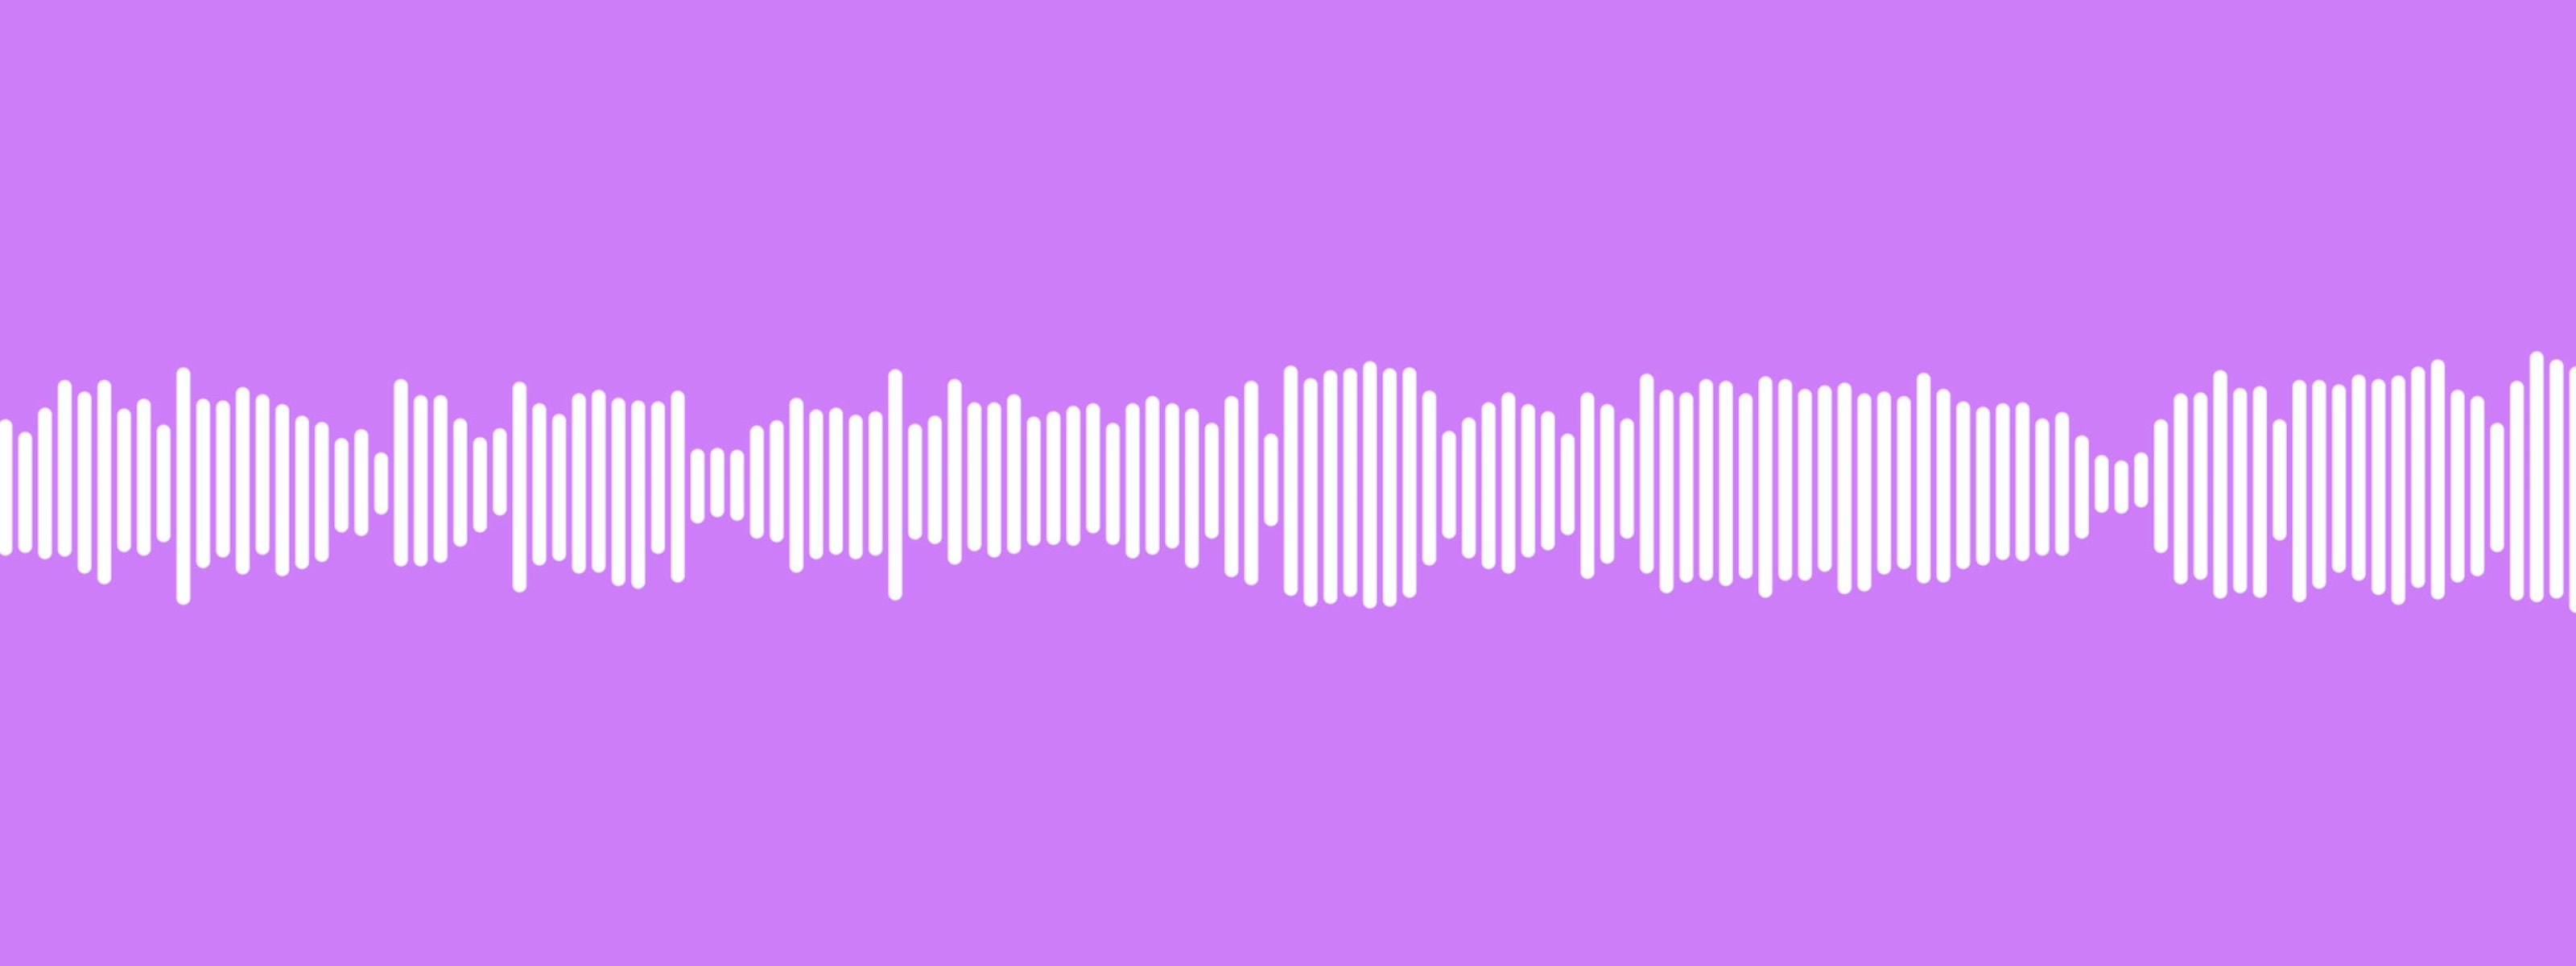 How To Make Your Voice Sound Better In Premiere Pro | Motion